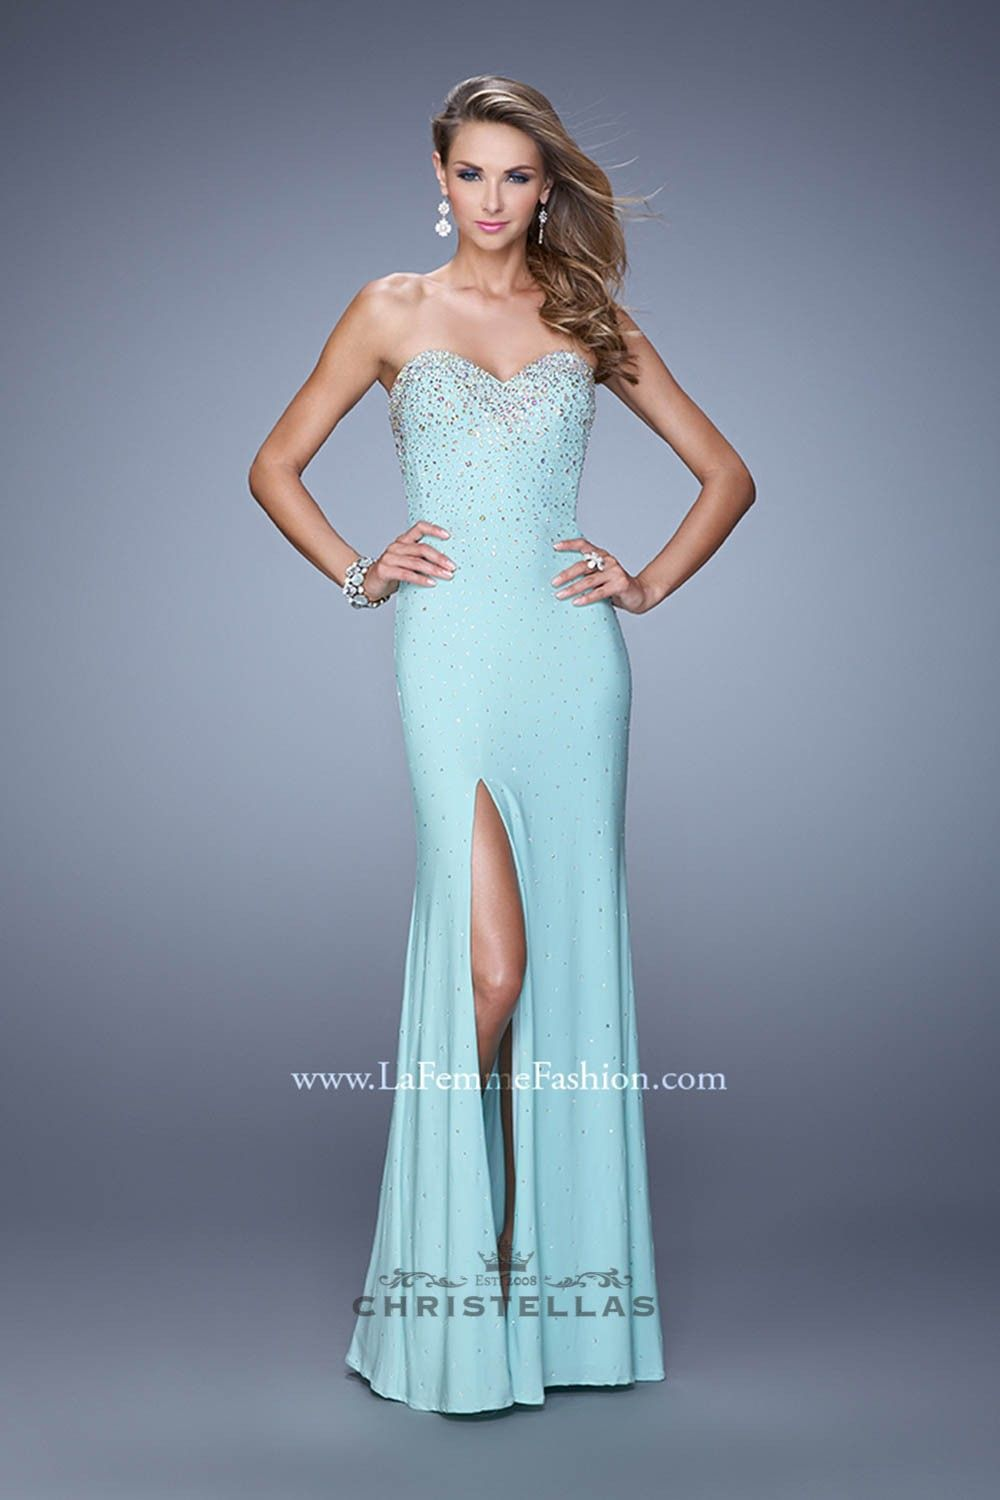 Sizzle with shimmer power in this elegant gown with a thigh slit ...